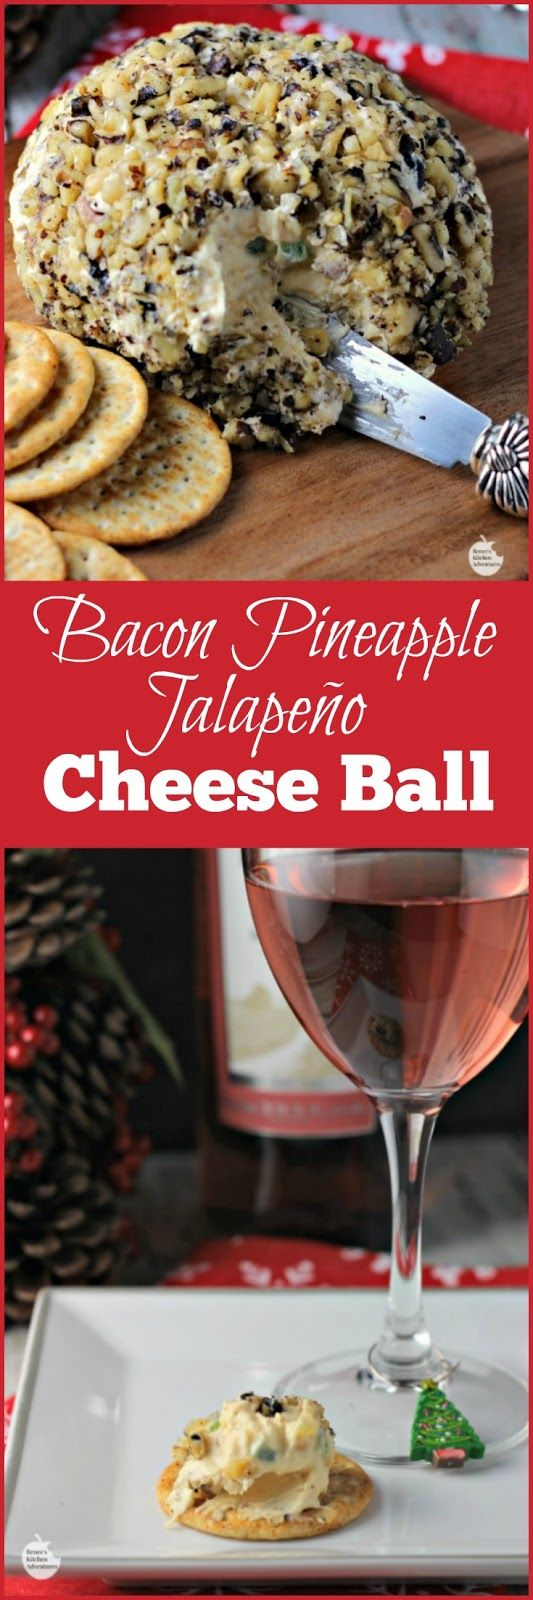 Bacon Pineapple Jalapeno Cheese Ball Appetizer Recipes Best Appetizers Cheese Ball